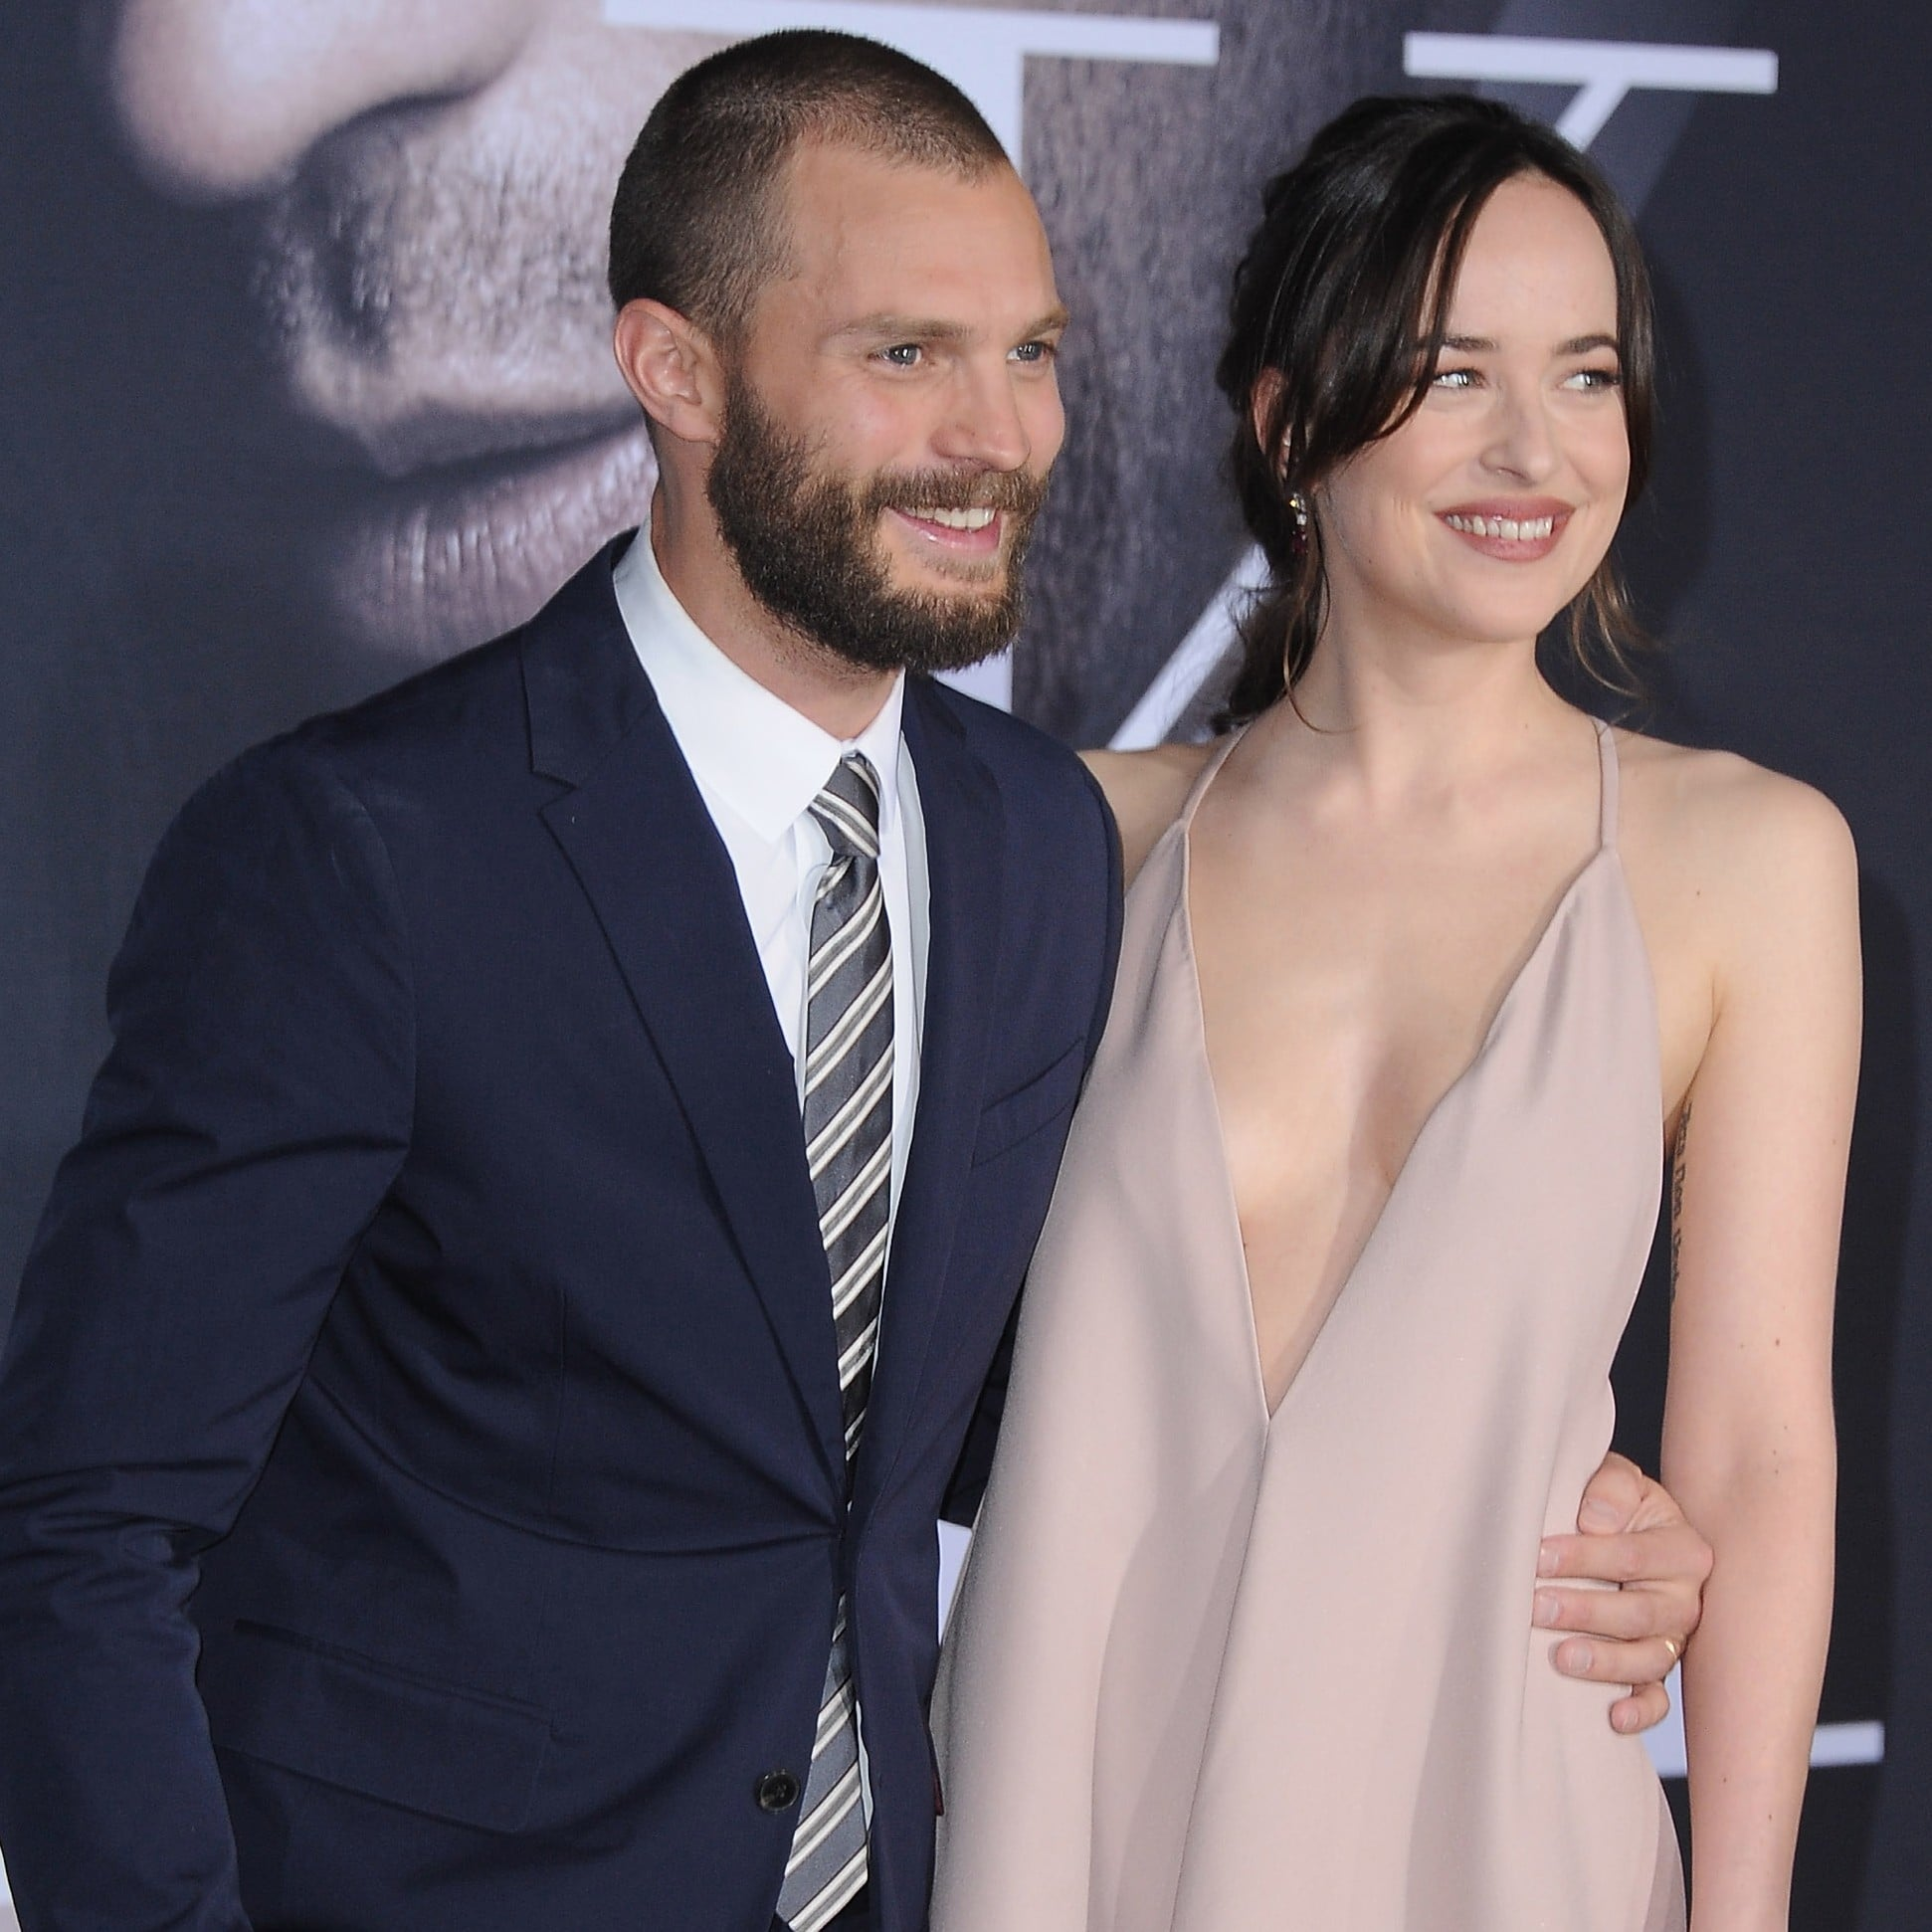 Jamie Dornan Dakota Johnson Fifty Shades Darker Premiere Really, for people with tried out and were unsuccessful in doing so, test these methods for a good fortune on the next occasion